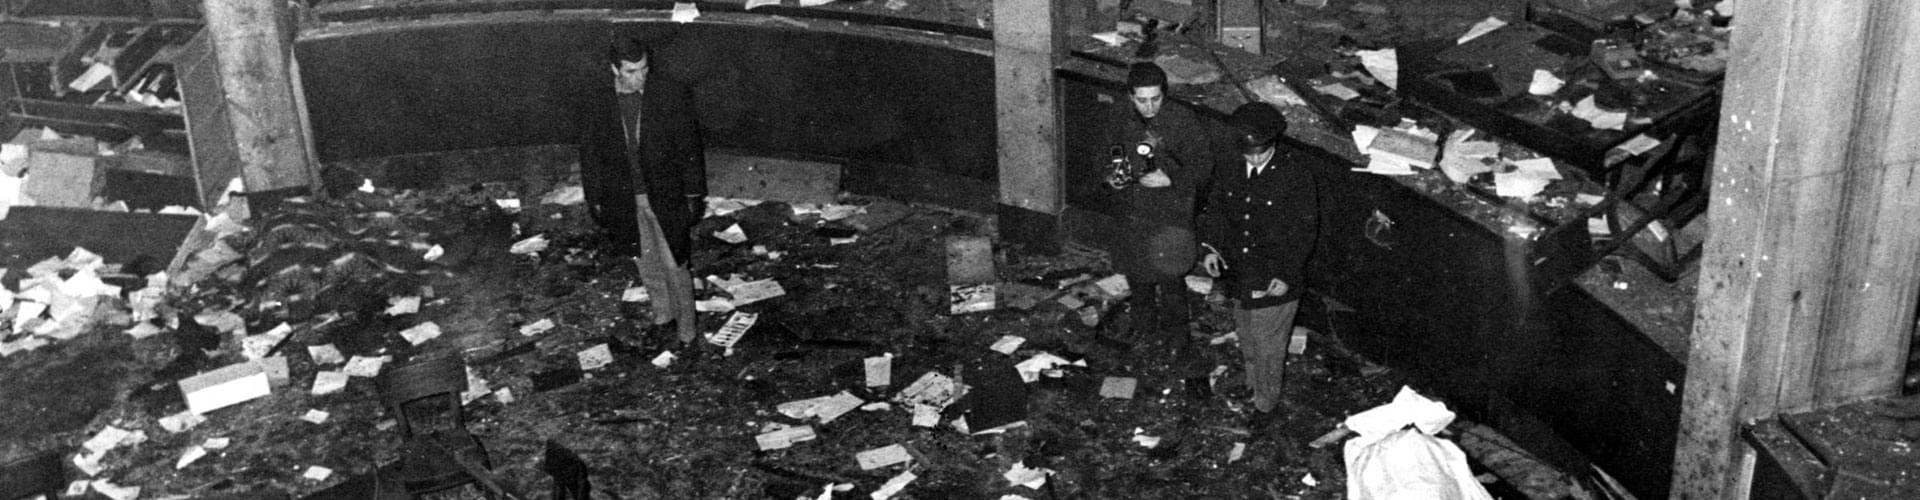 Years of Lead, Anni di Piombo, Piazza Fontana, Giuseppe Pinelli, terrorist bombings, Italian terrorism, Maoist Student Movement, Vincenzo Vinciguerra, Ordine Nuovo, Avanguardia Nazionale, Red Brigades, Walter Tobagi, Aldo Moro, Mario Moretti